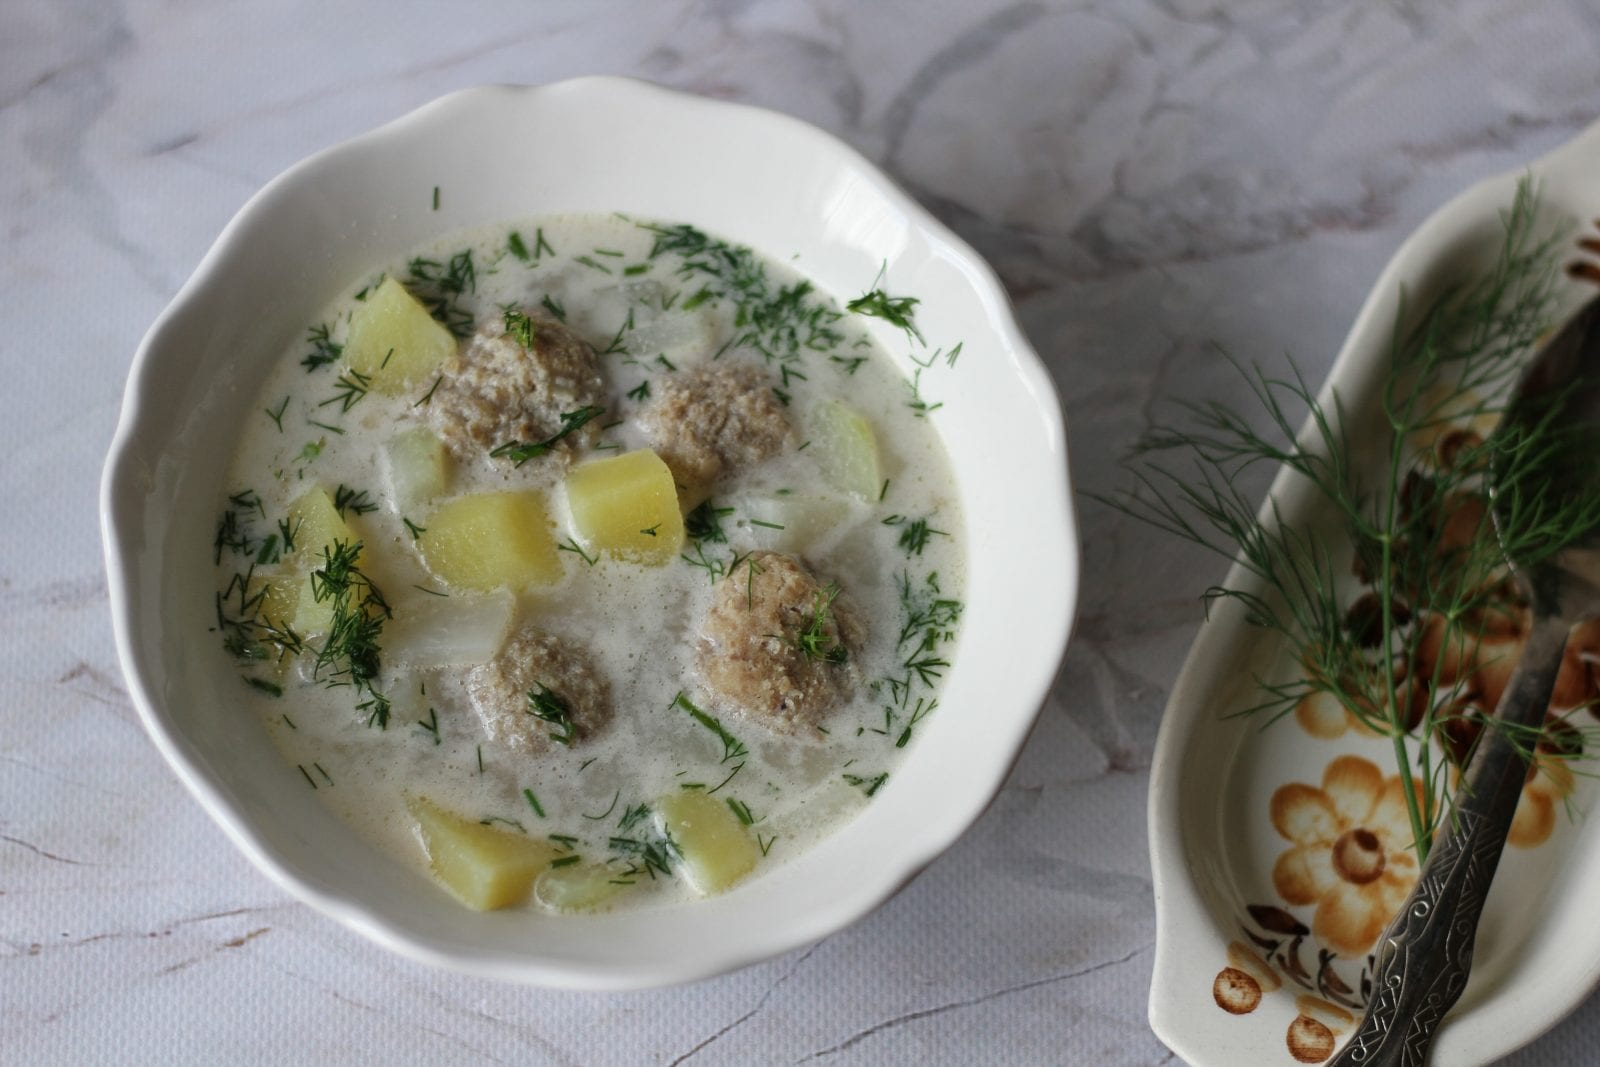 Kohlrabi soup with meatballs